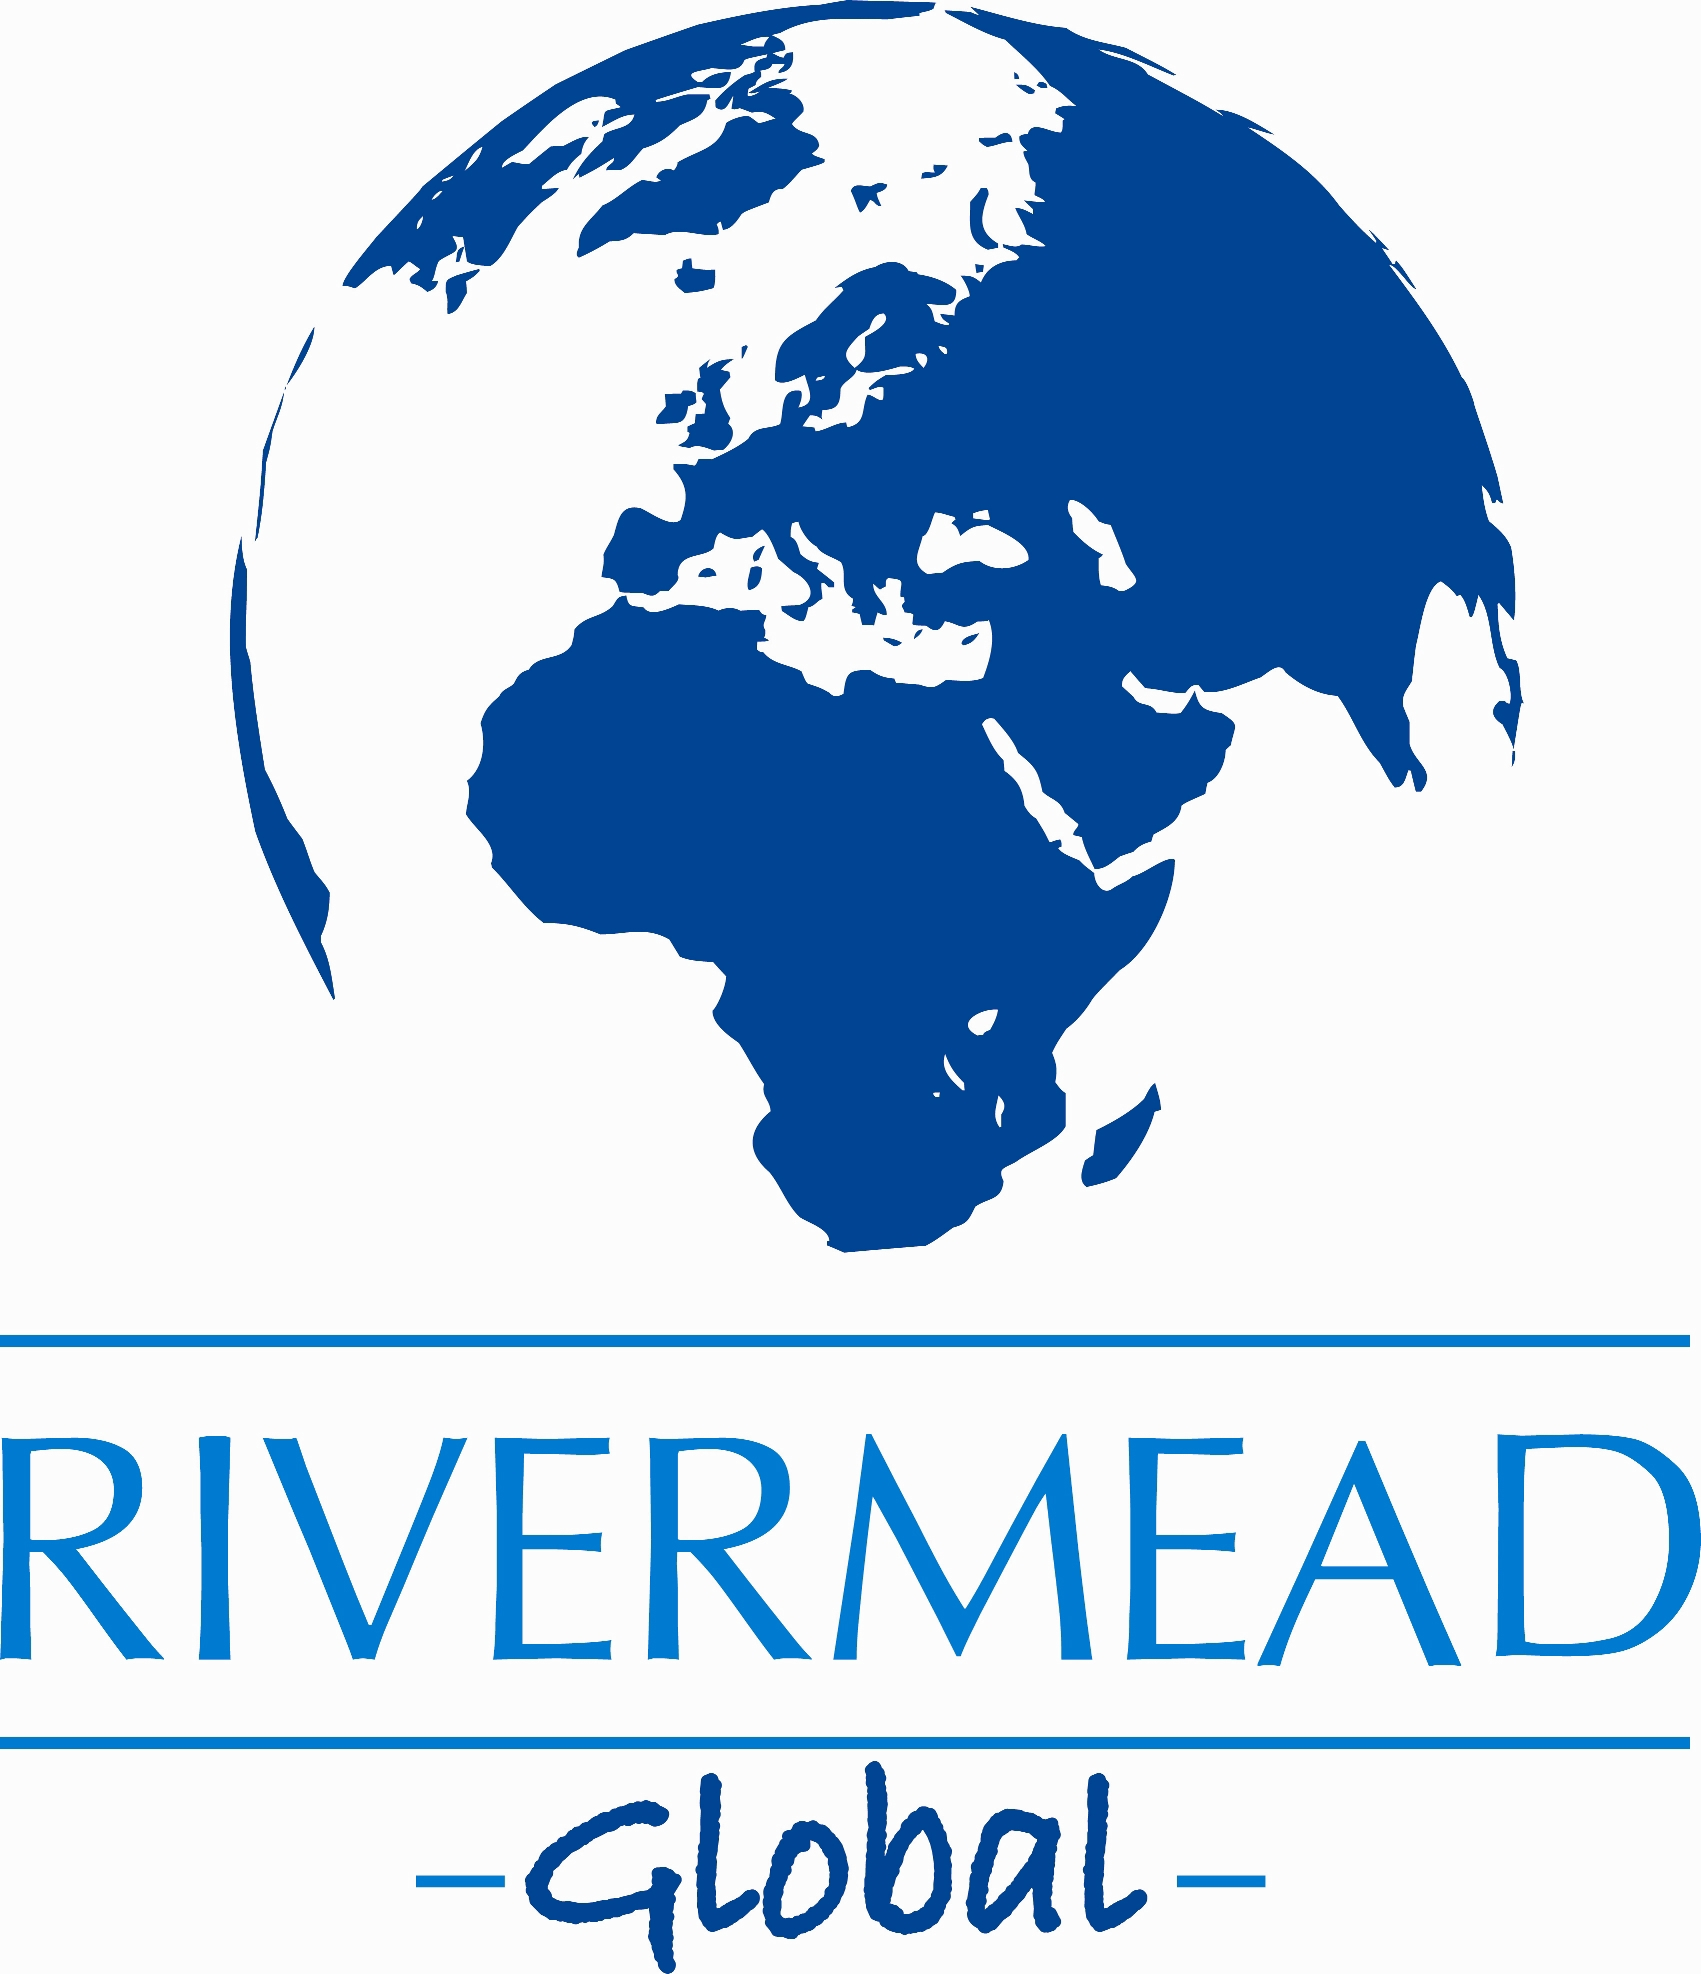 Rivermead Global Property